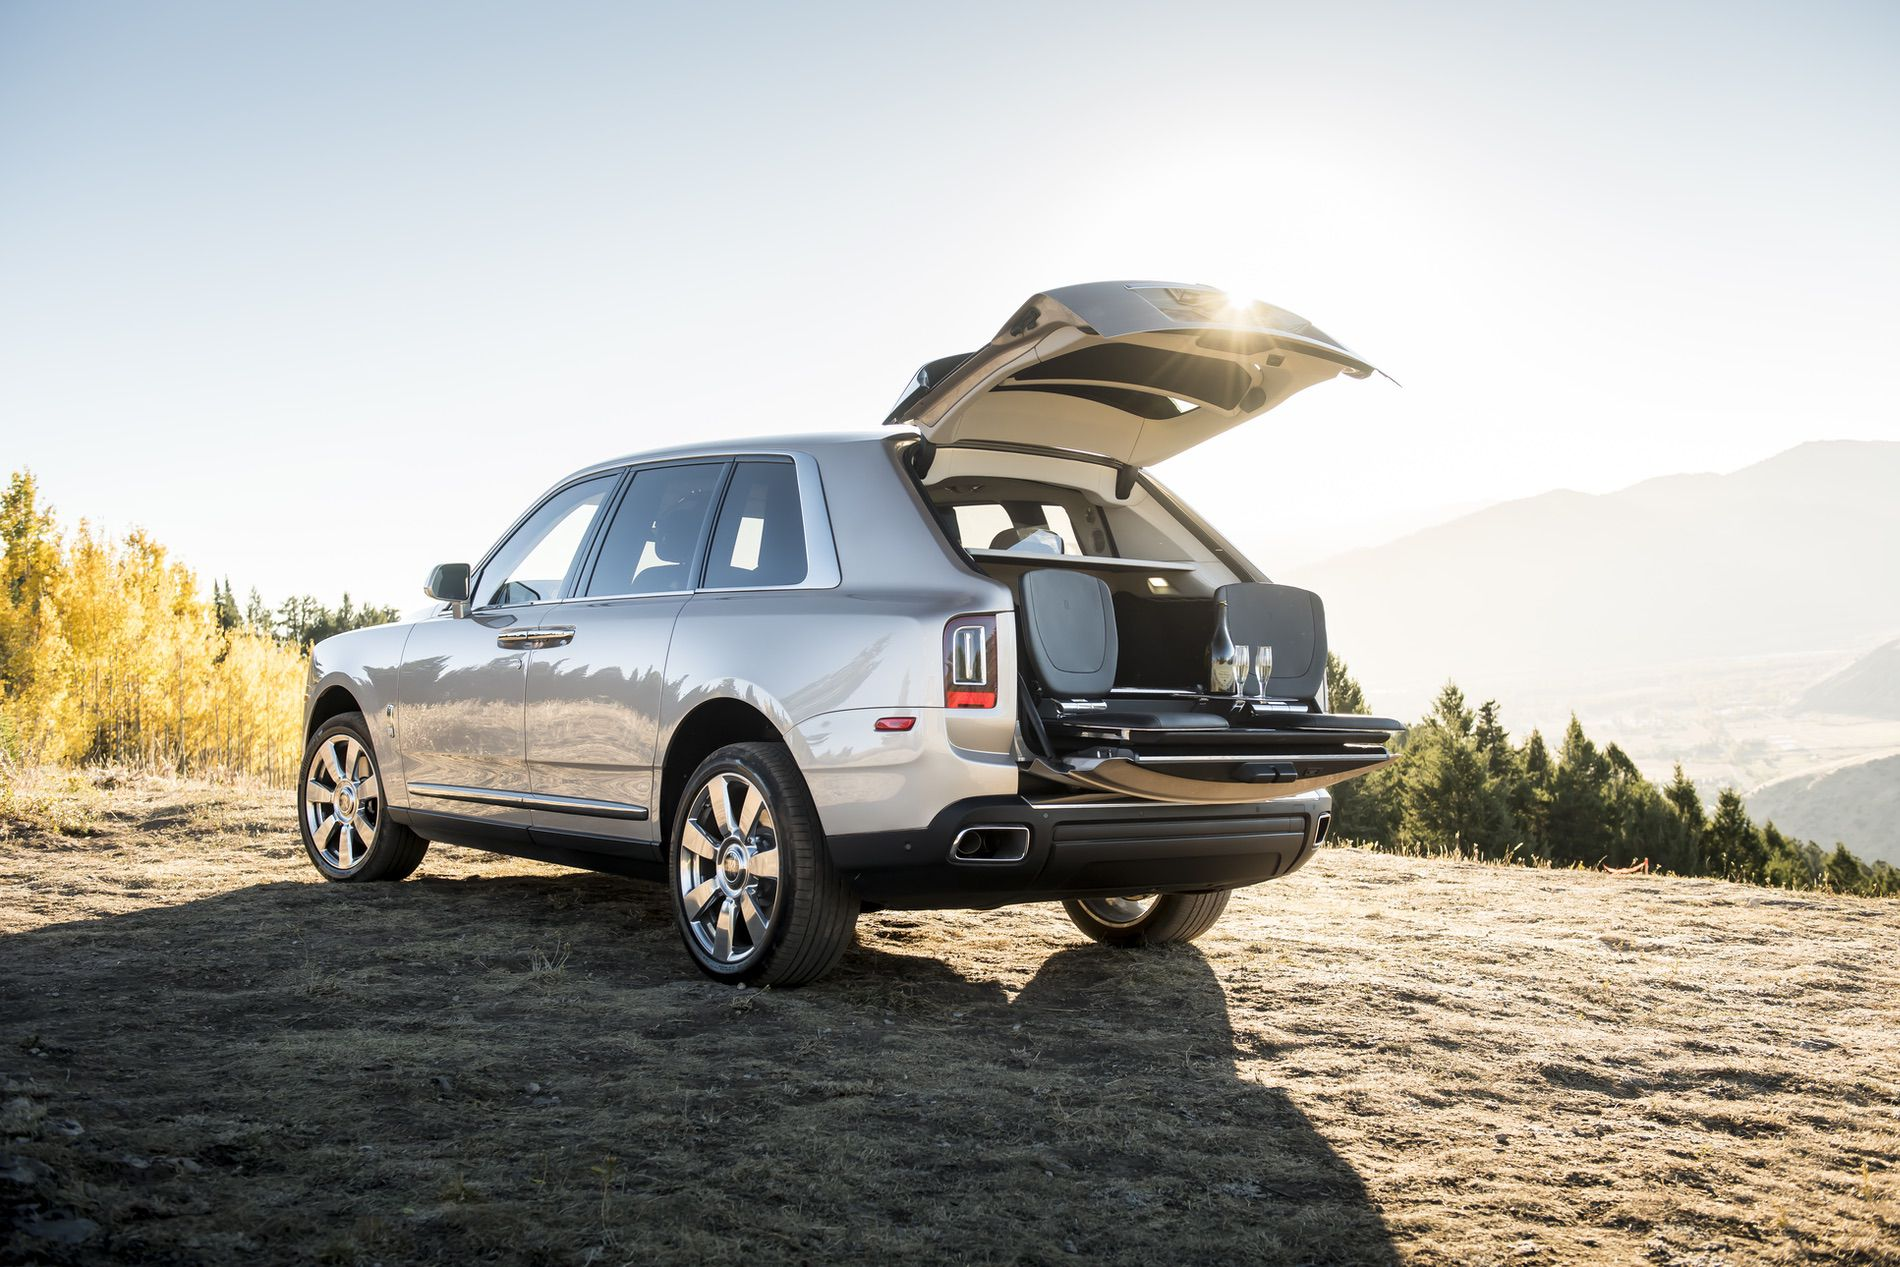 First Rolls-Royce Cullinan SUVs Leave Goodwood, Head To